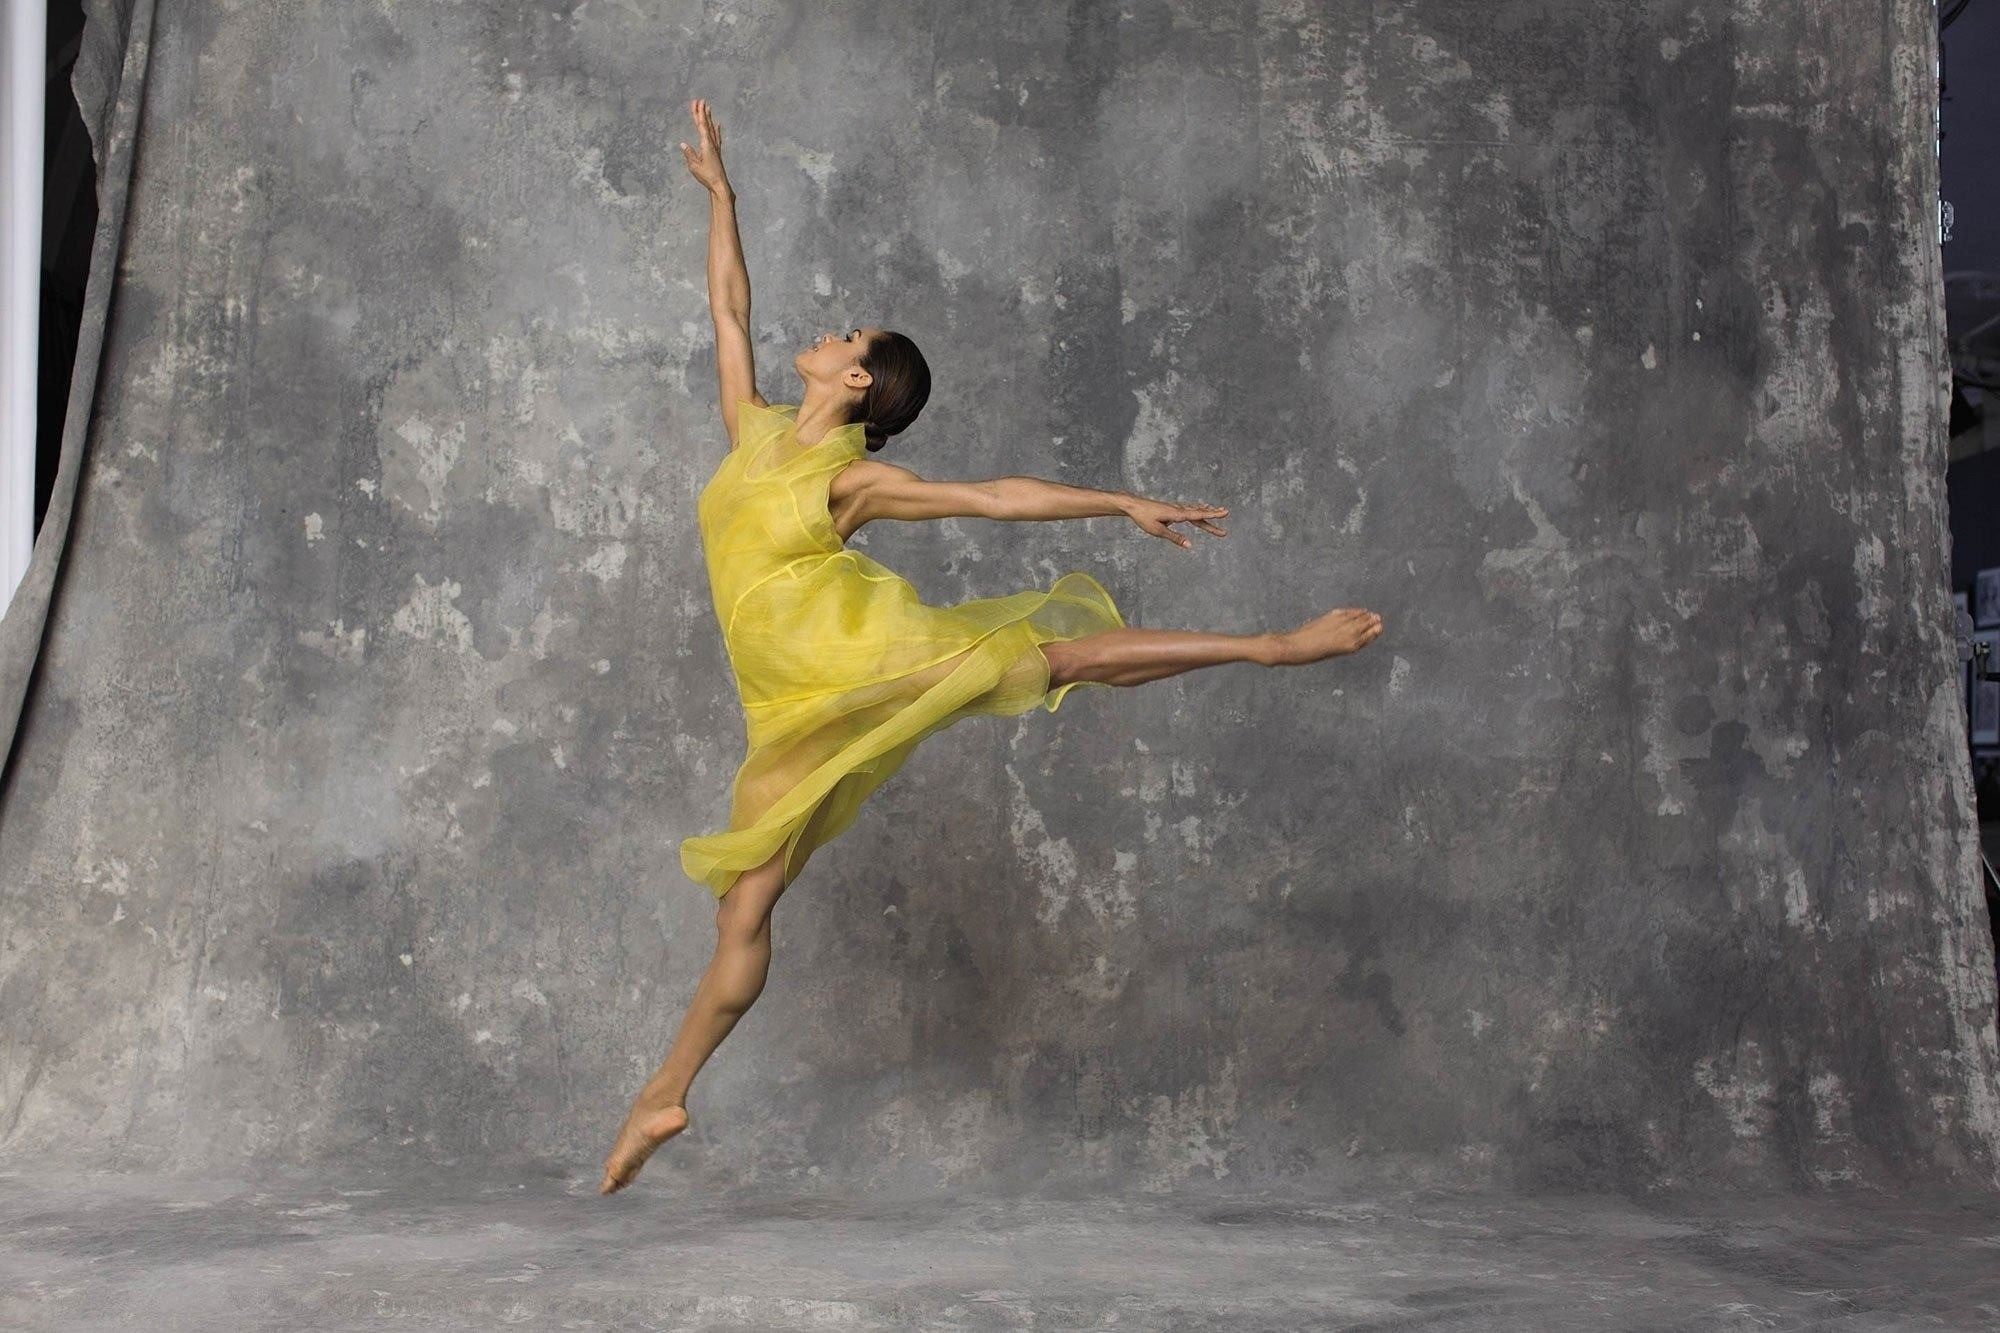 Misty Copeland Is the First African-American Principal Ballerina at ABT